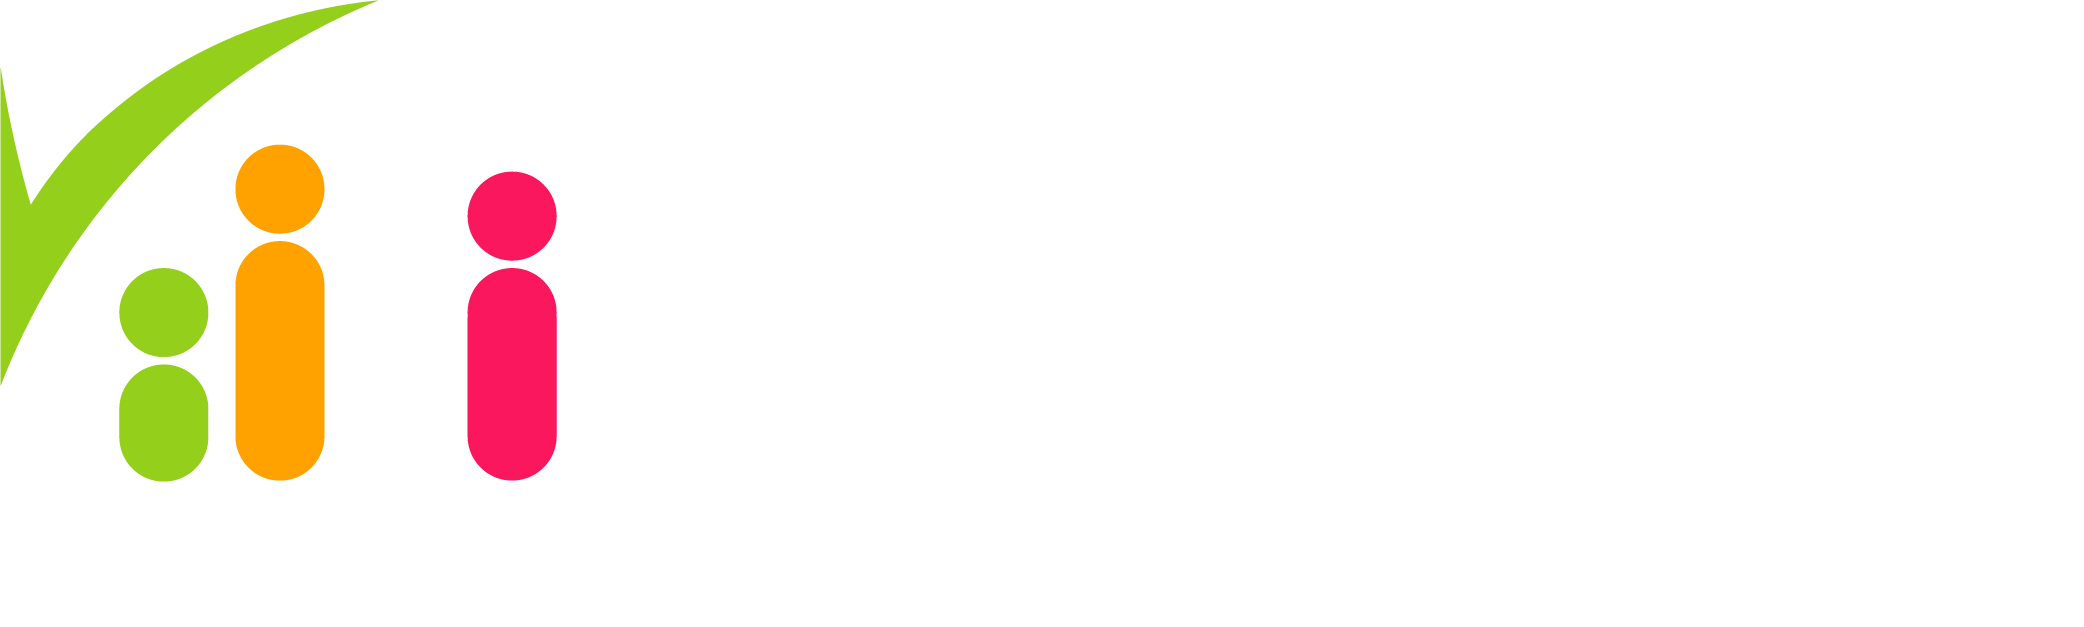 Logo design for a vaccination special interest group (Medical)